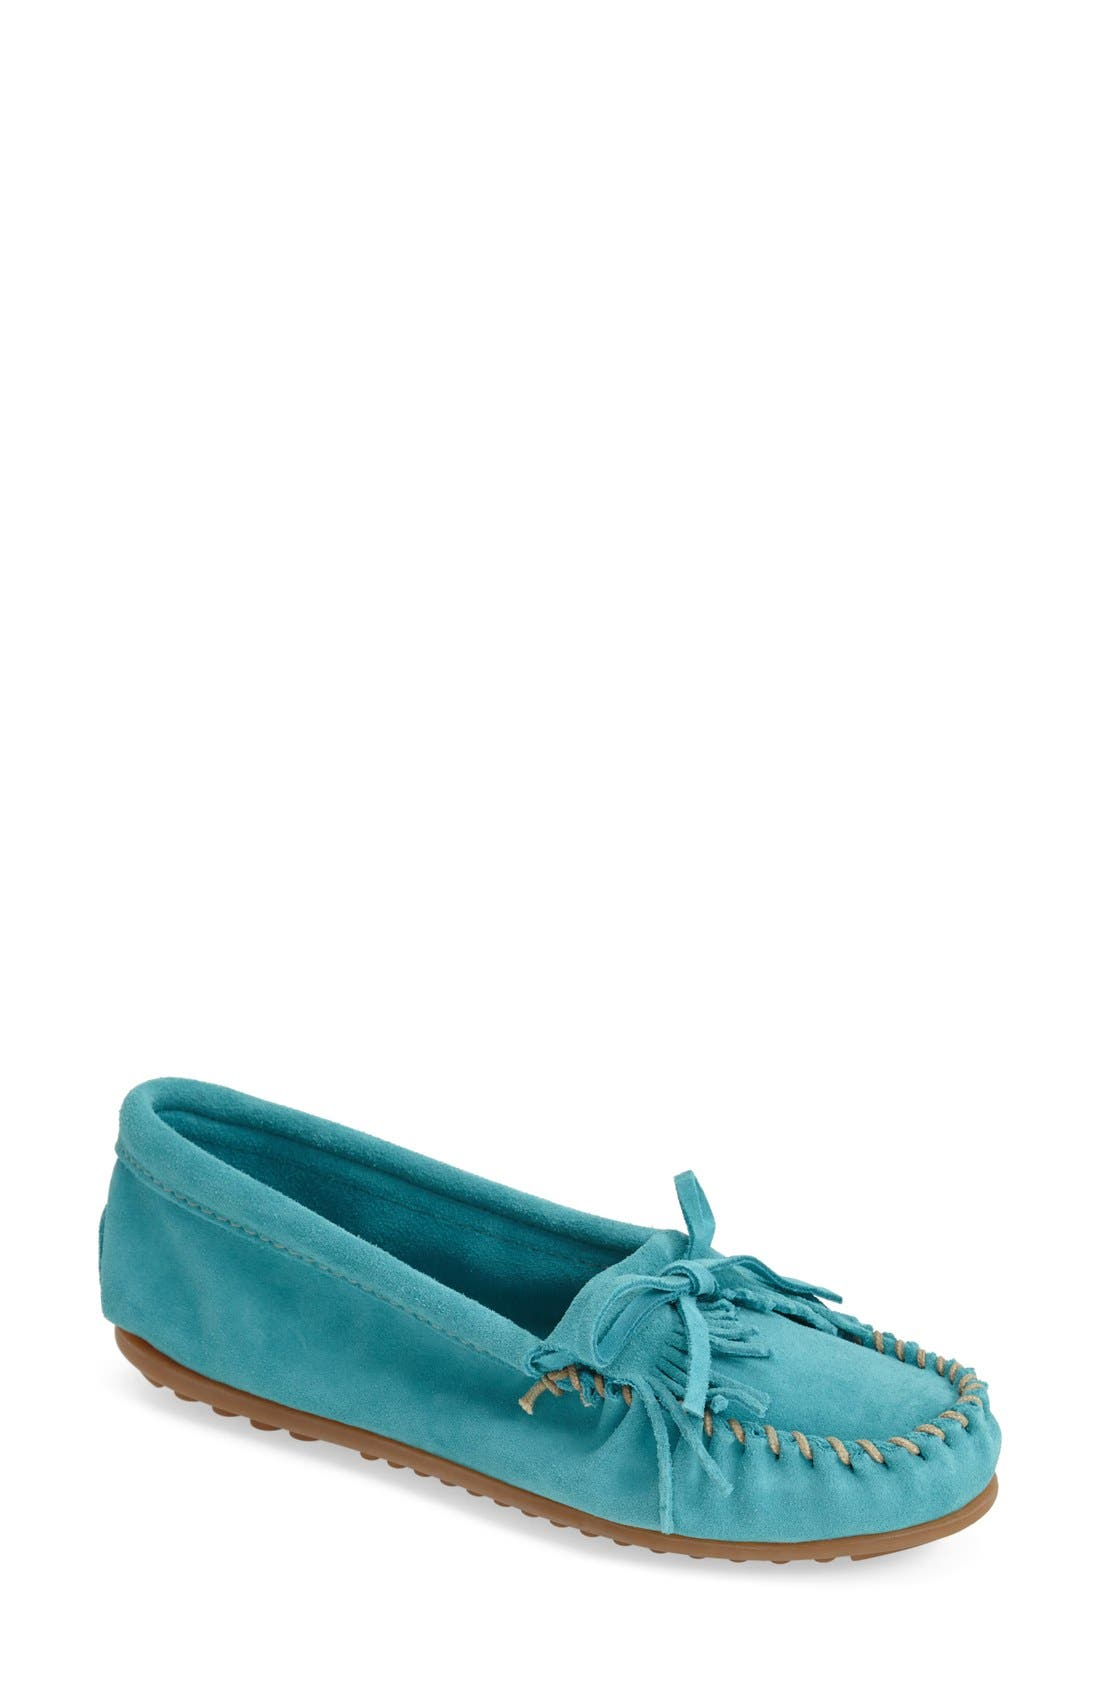 'Kilty' Suede Moccasin,                             Main thumbnail 1, color,                             TURQUOISE